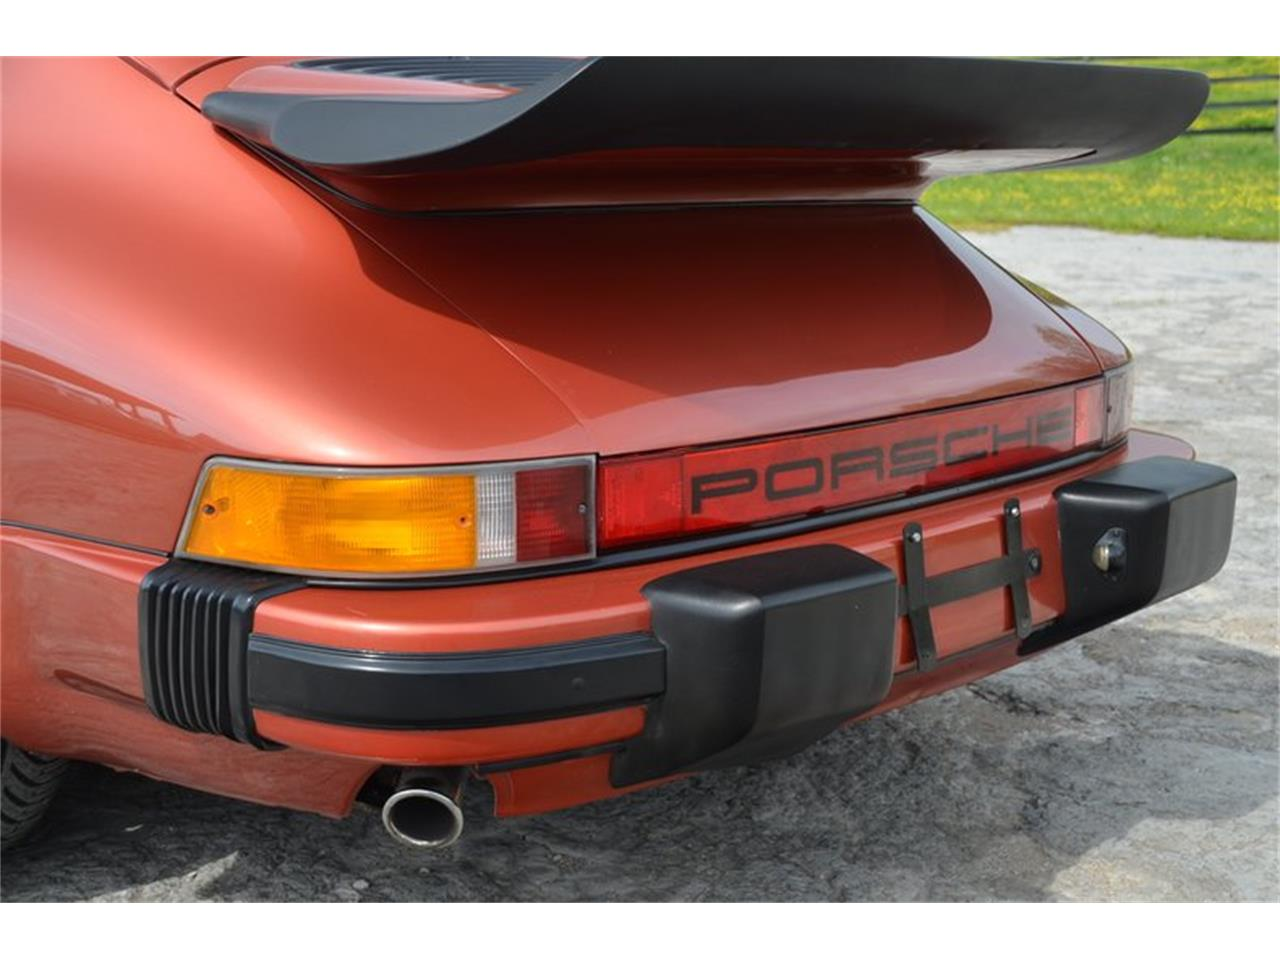 Large Picture of '84 Porsche 911 located in Lebanon Tennessee Offered by Frazier Motor Car Company - PX8U